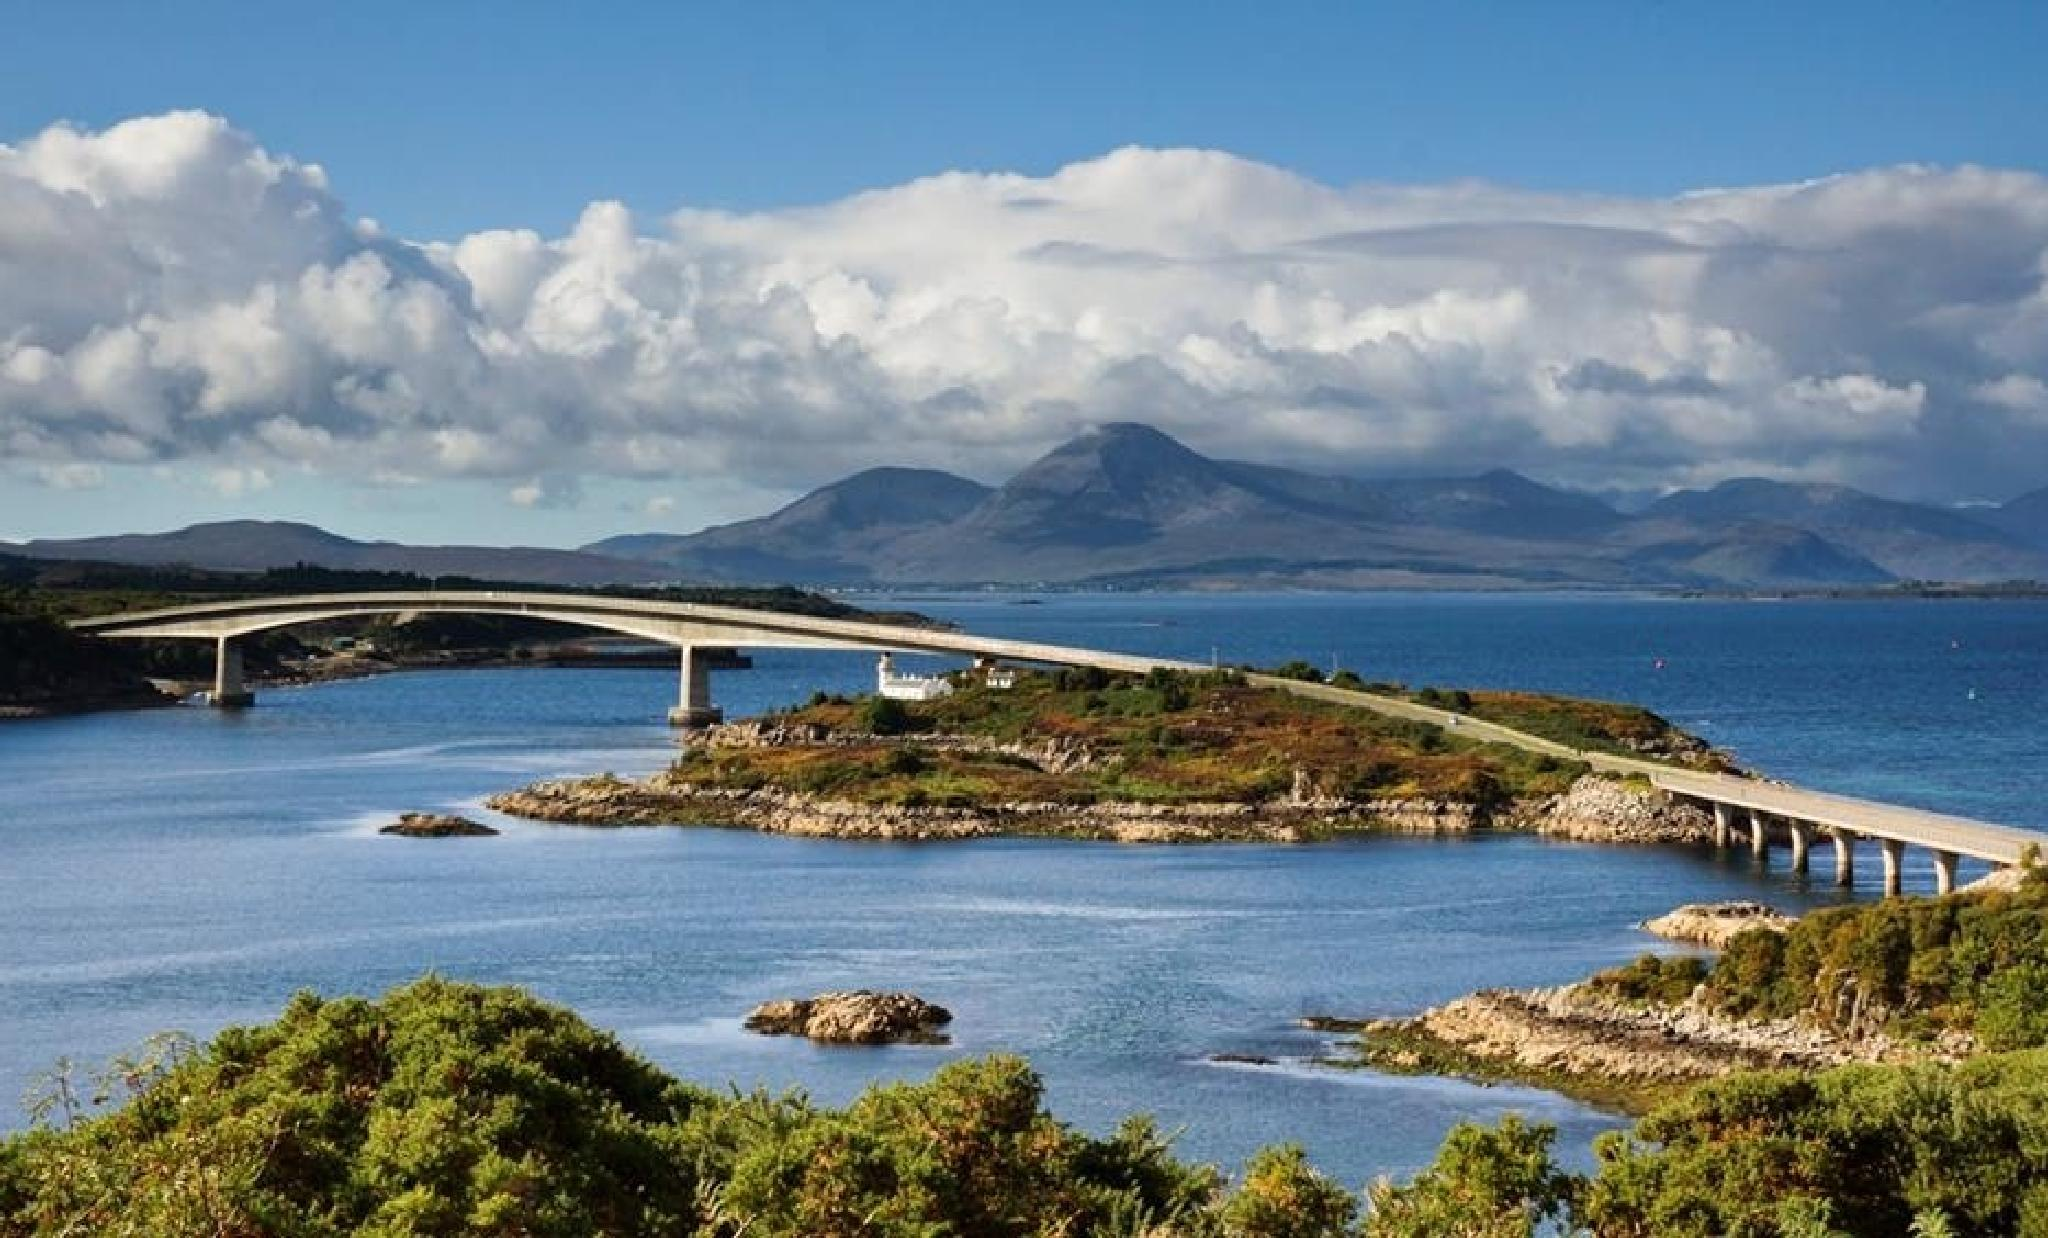 Skye Bridge and the Cuillins by Scottish Landscapes